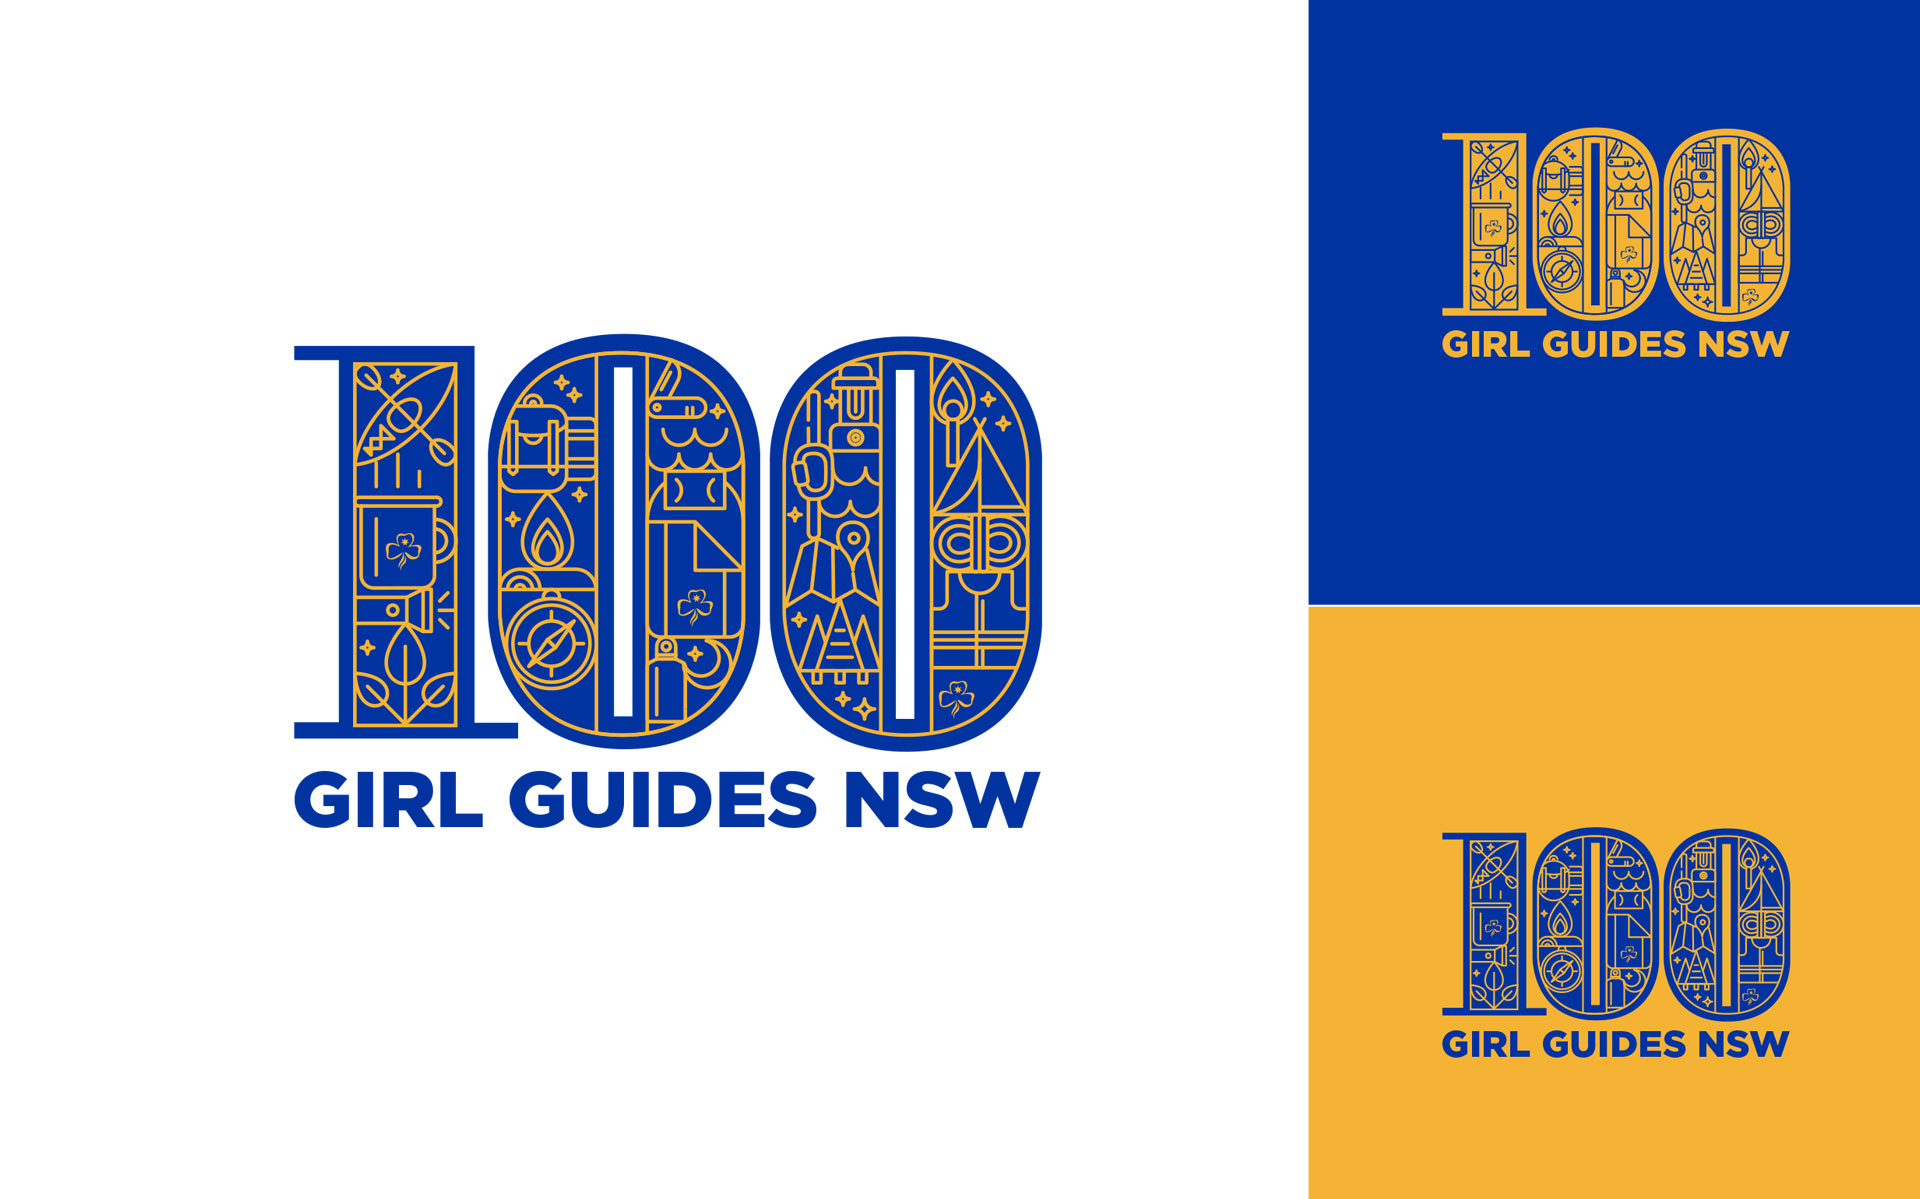 Girl Guides Australia marketing materials designed by Amy Howard at Yellow Sunday